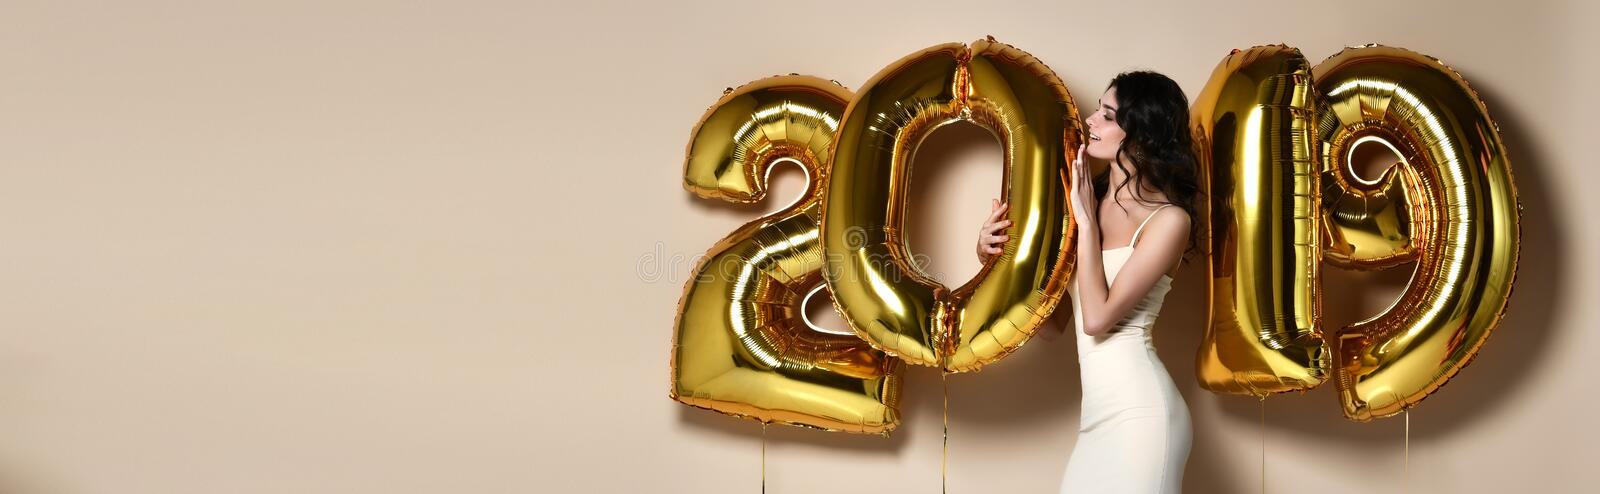 Portrait Of Beautiful Smiling Girl In Shiny Golden Dress Throwing Confetti, Having Fun With Gold 2018 Balloons On Background. stock photo